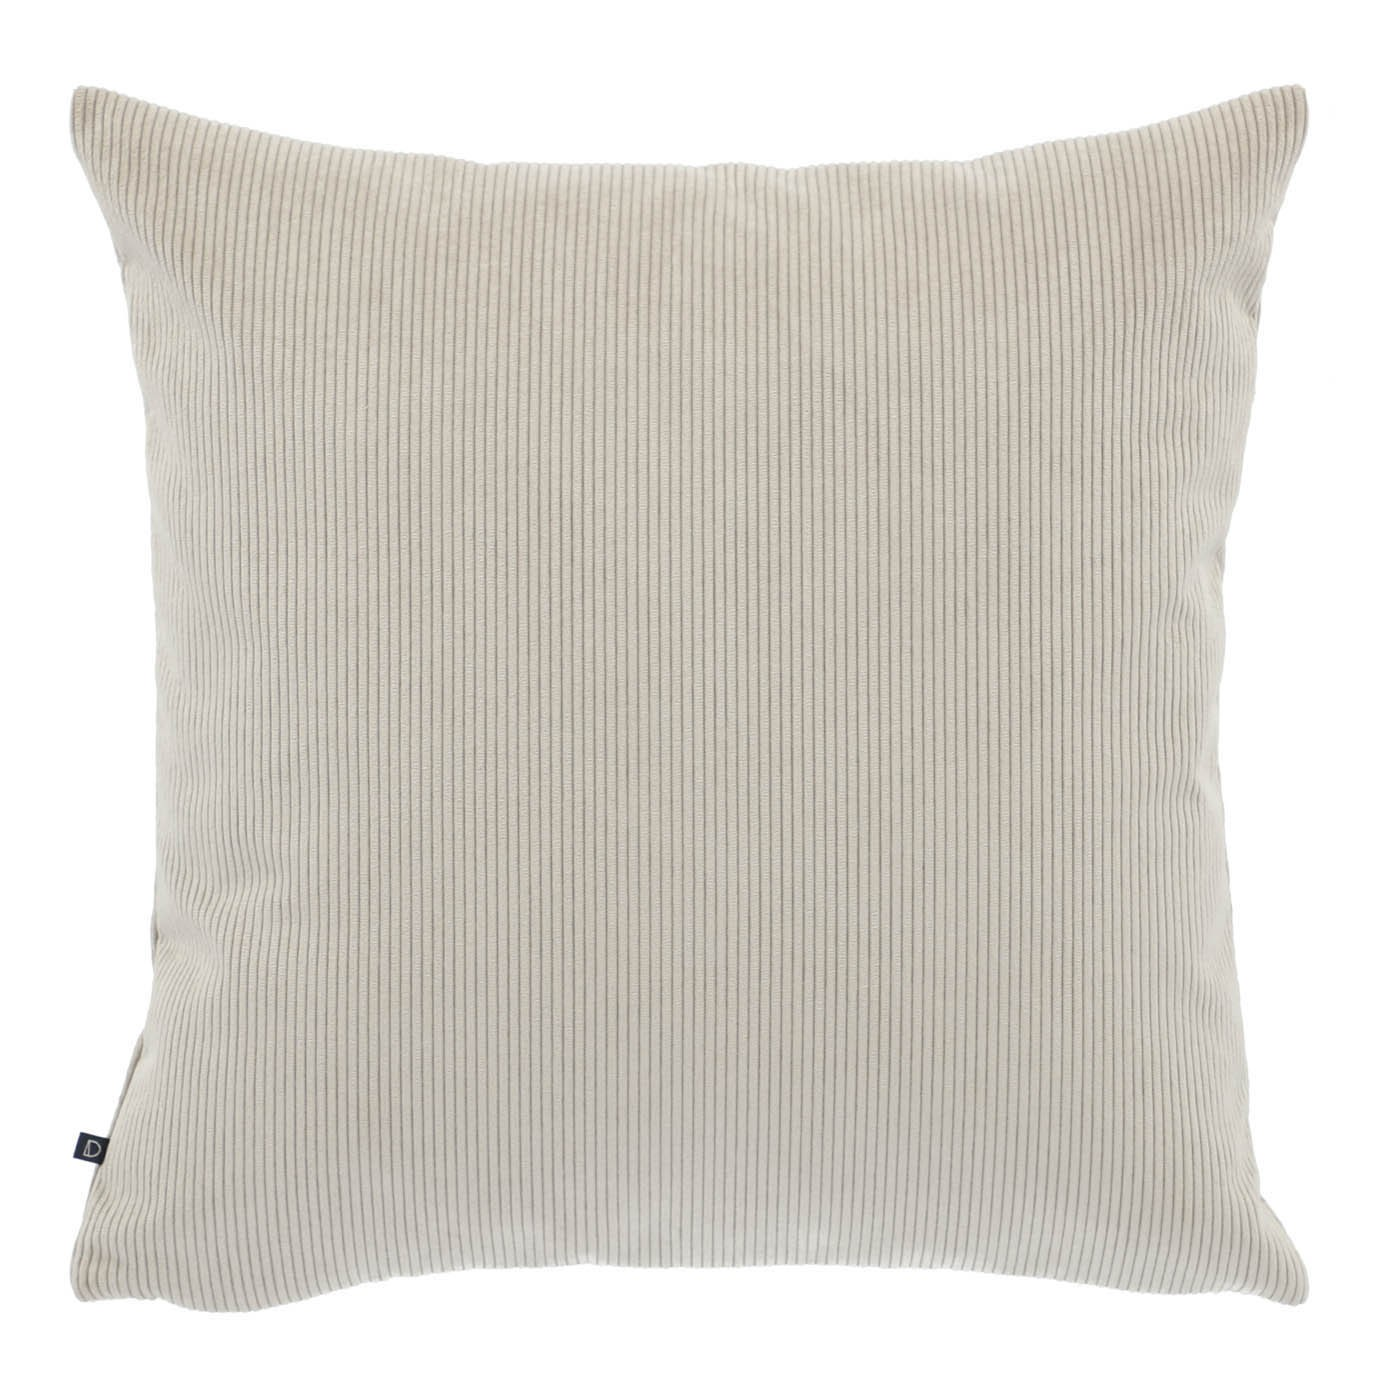 Chelsea Corduroy Fabric Scatter Cushion, Beige